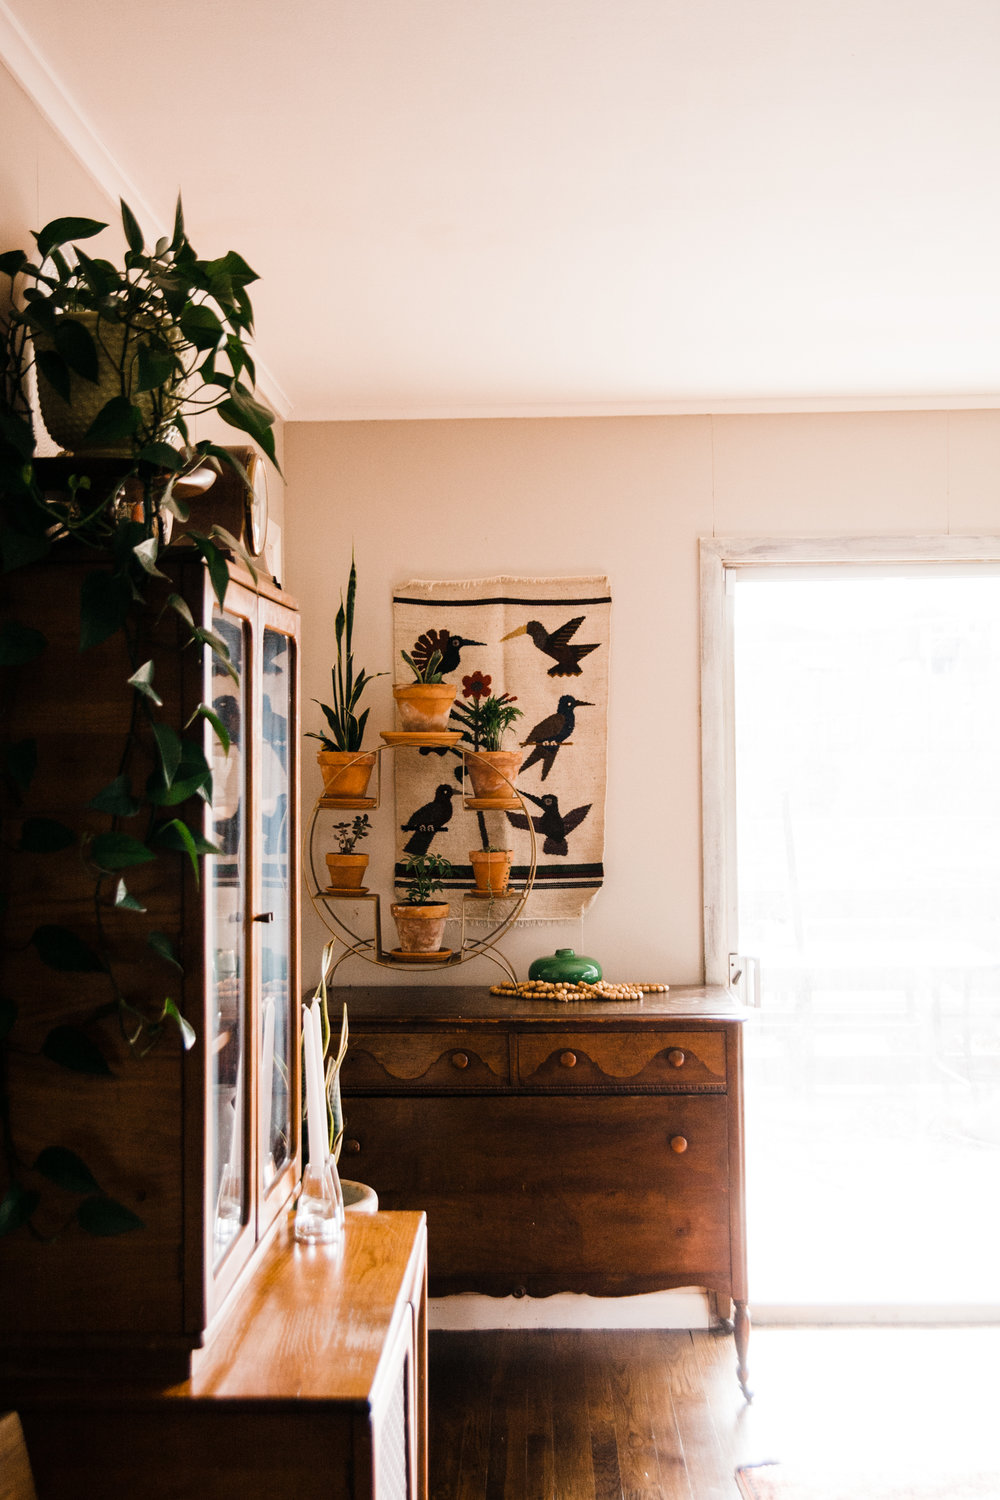 We love the primitive wooden pieces throughout the home.